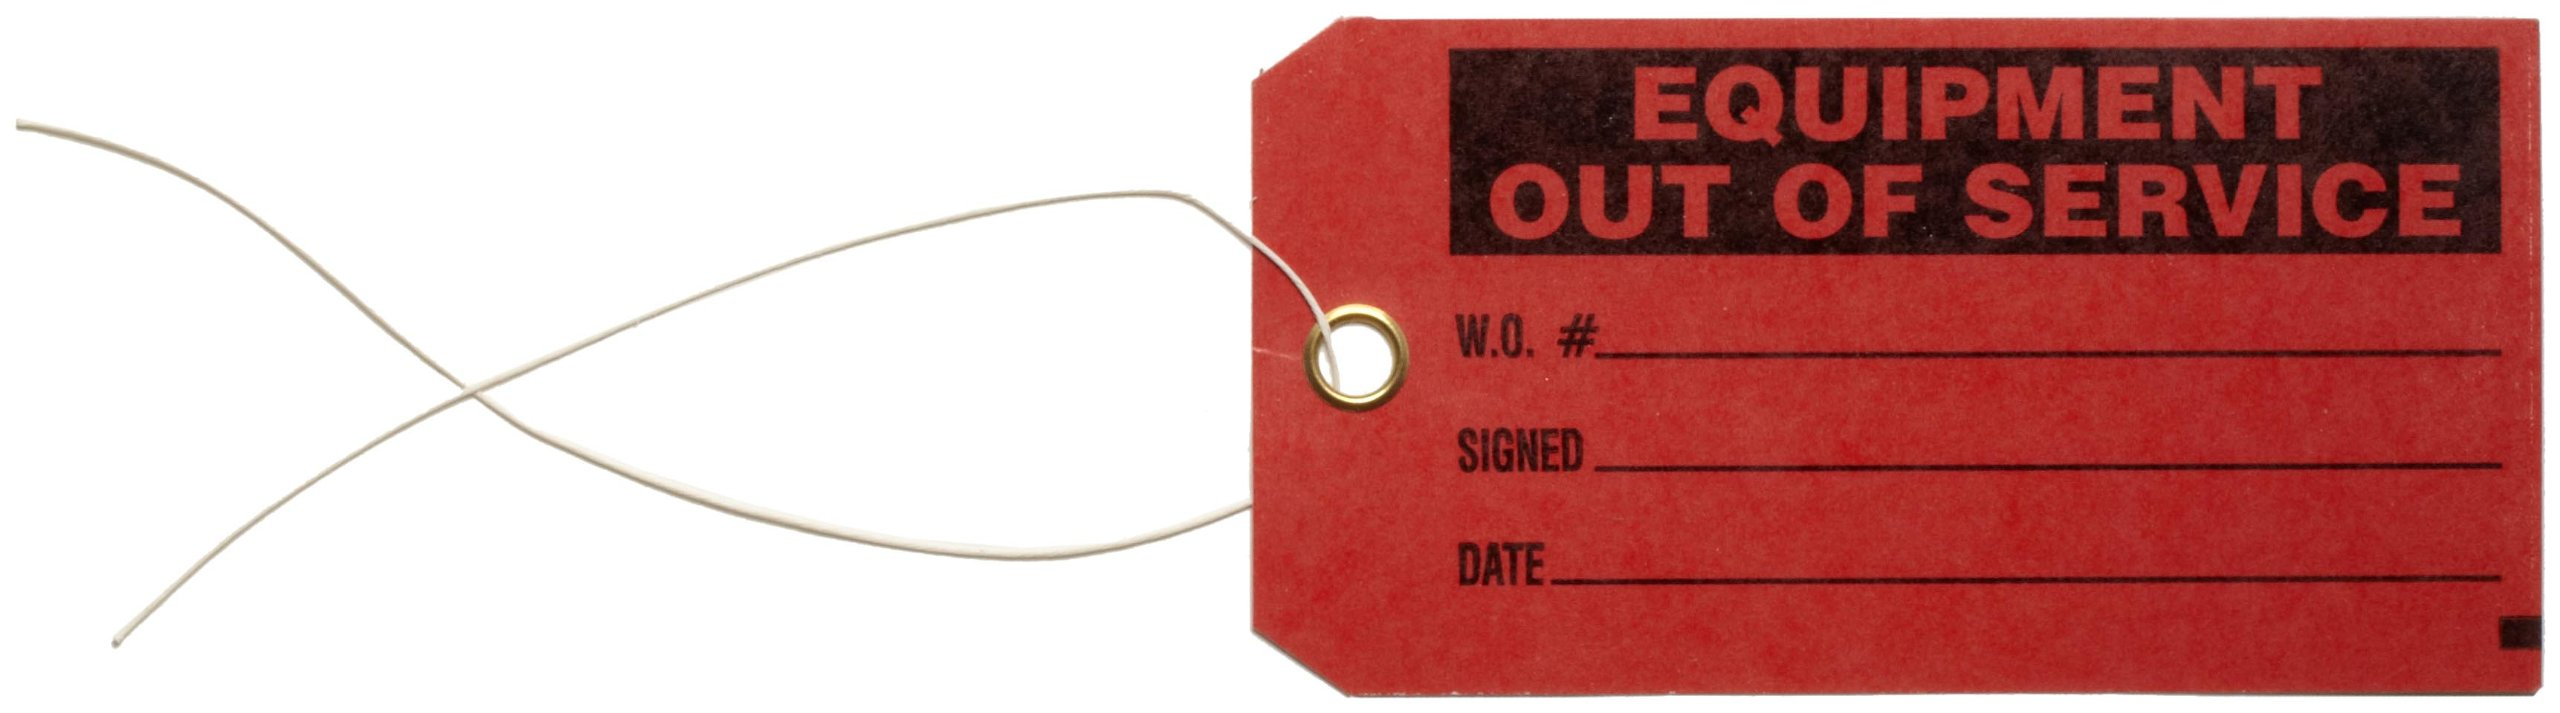 Brady 86756 5-3/4'' Height, 3'' Width, B-853 Cardstock, Black On Red Color Production Status Tag, Legend ''Equipment Out Of Service, W.S.Number/Signed/Date'' (Pack Of 100) by Brady